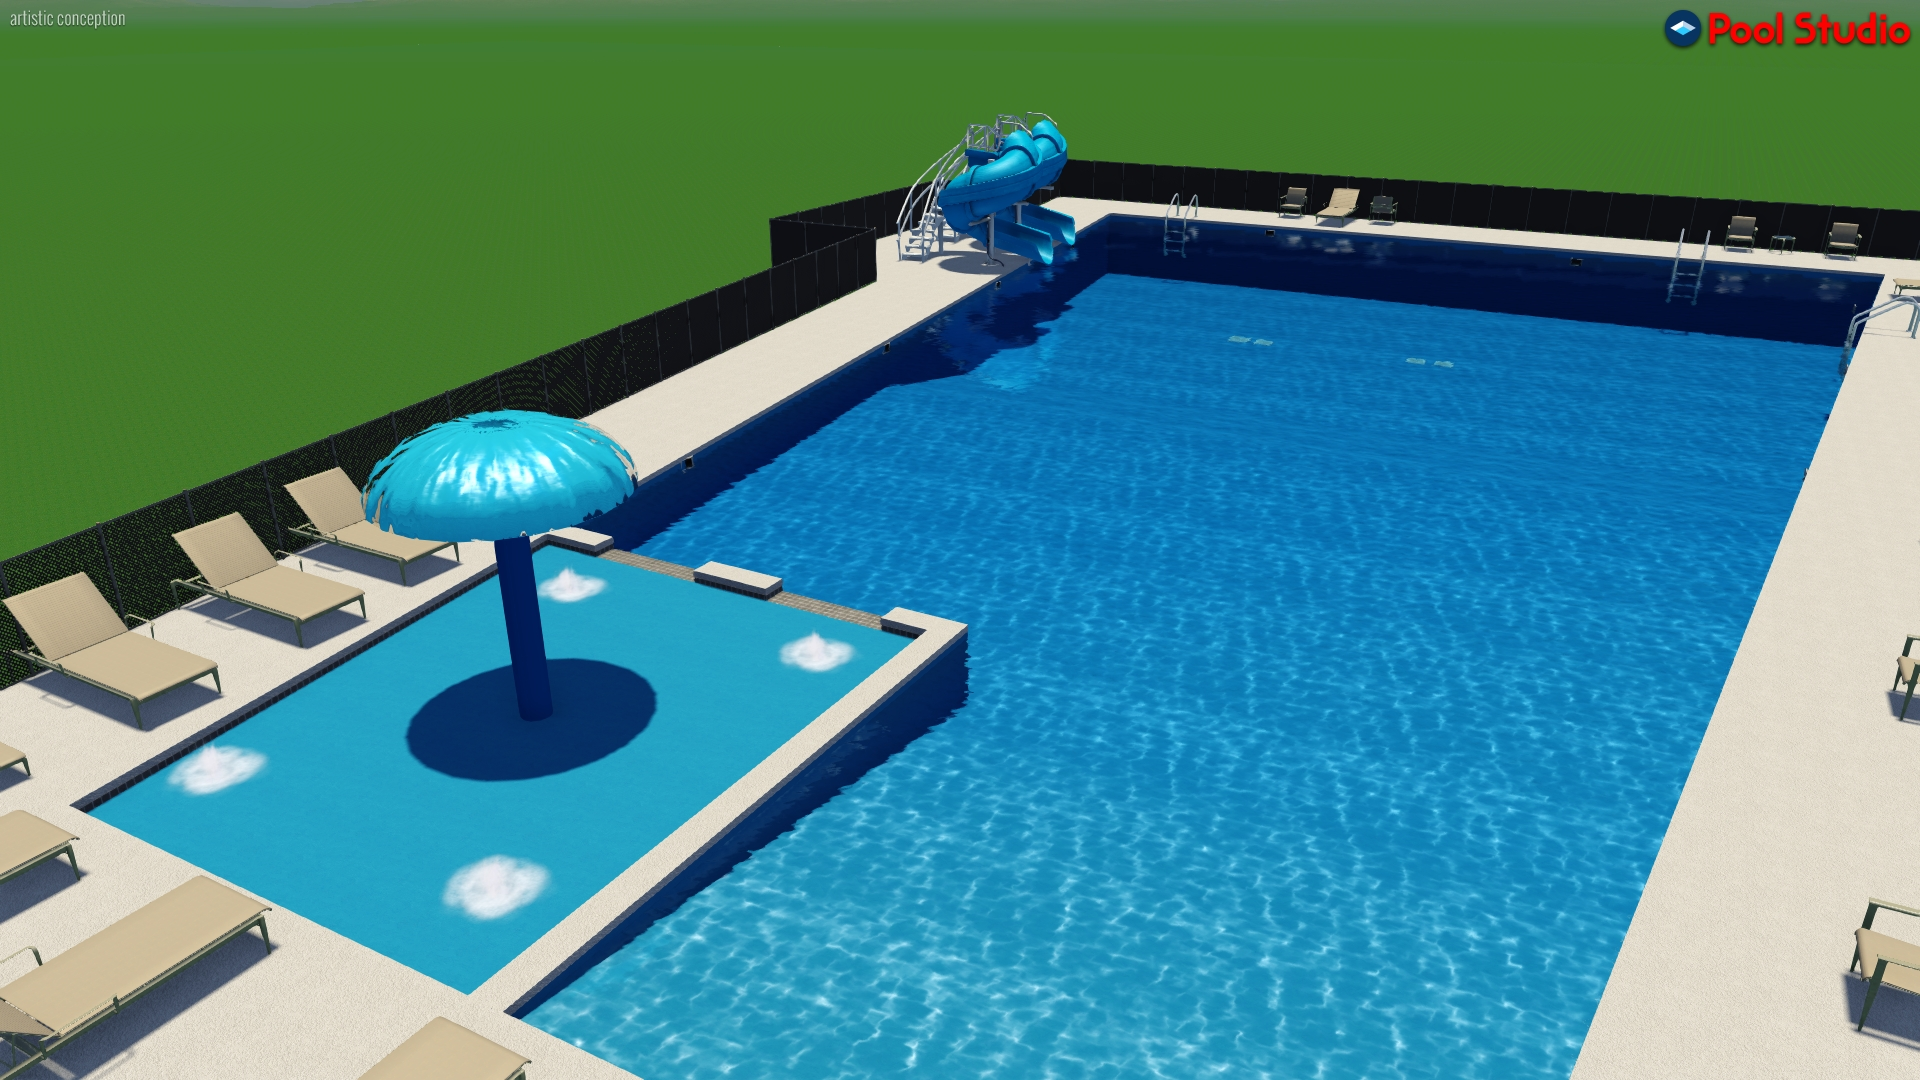 One proposed design of the new pool.